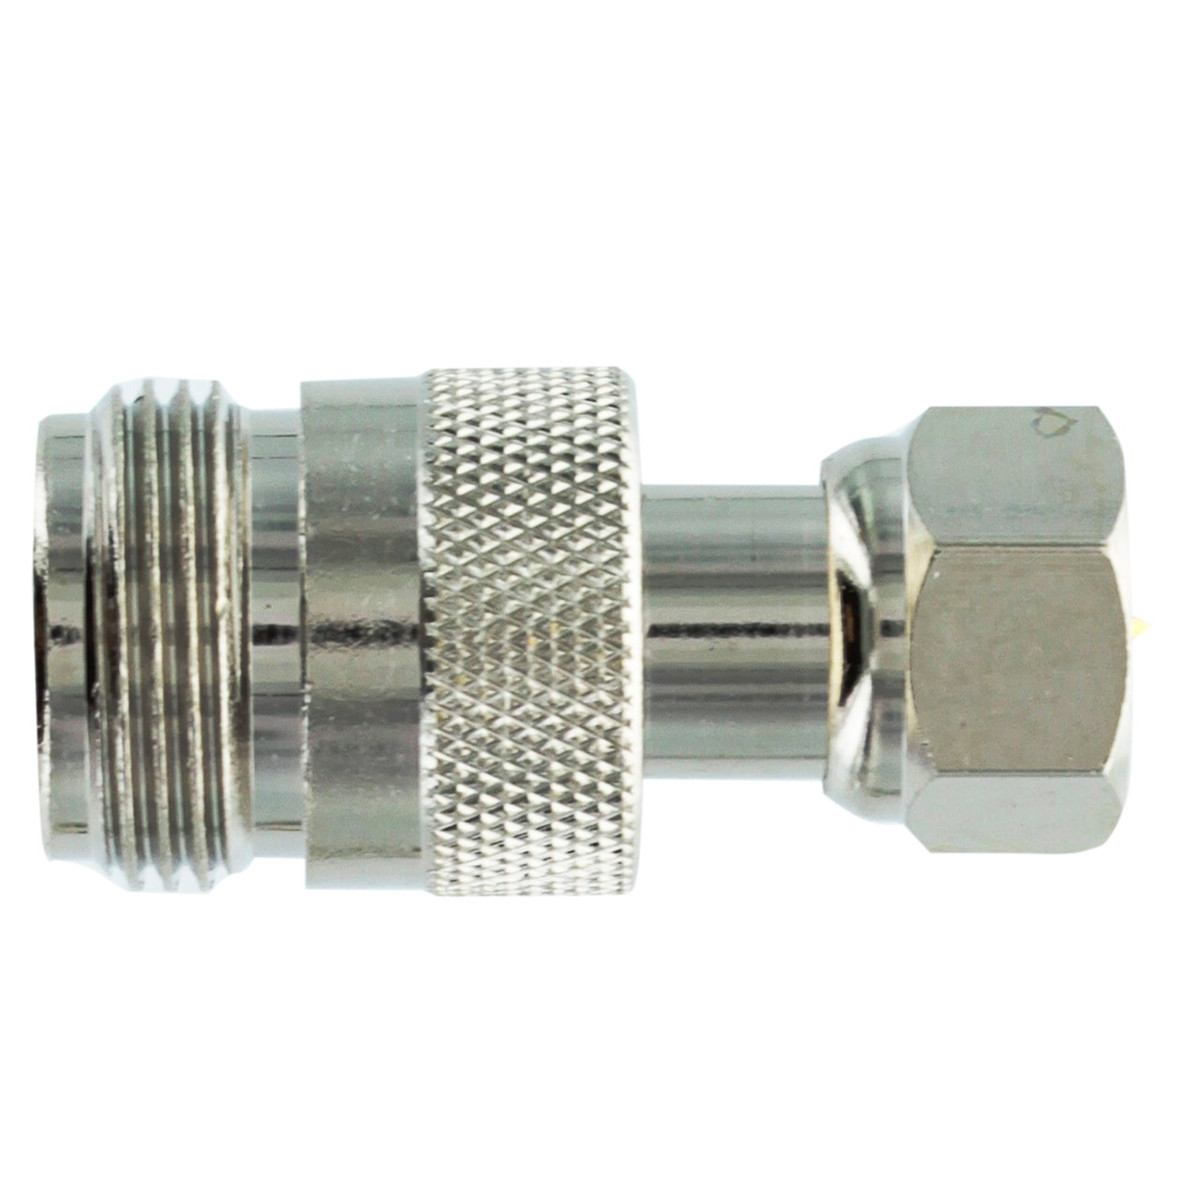 weBoost (Wilson) 971151 F-Male to N-Female Connector